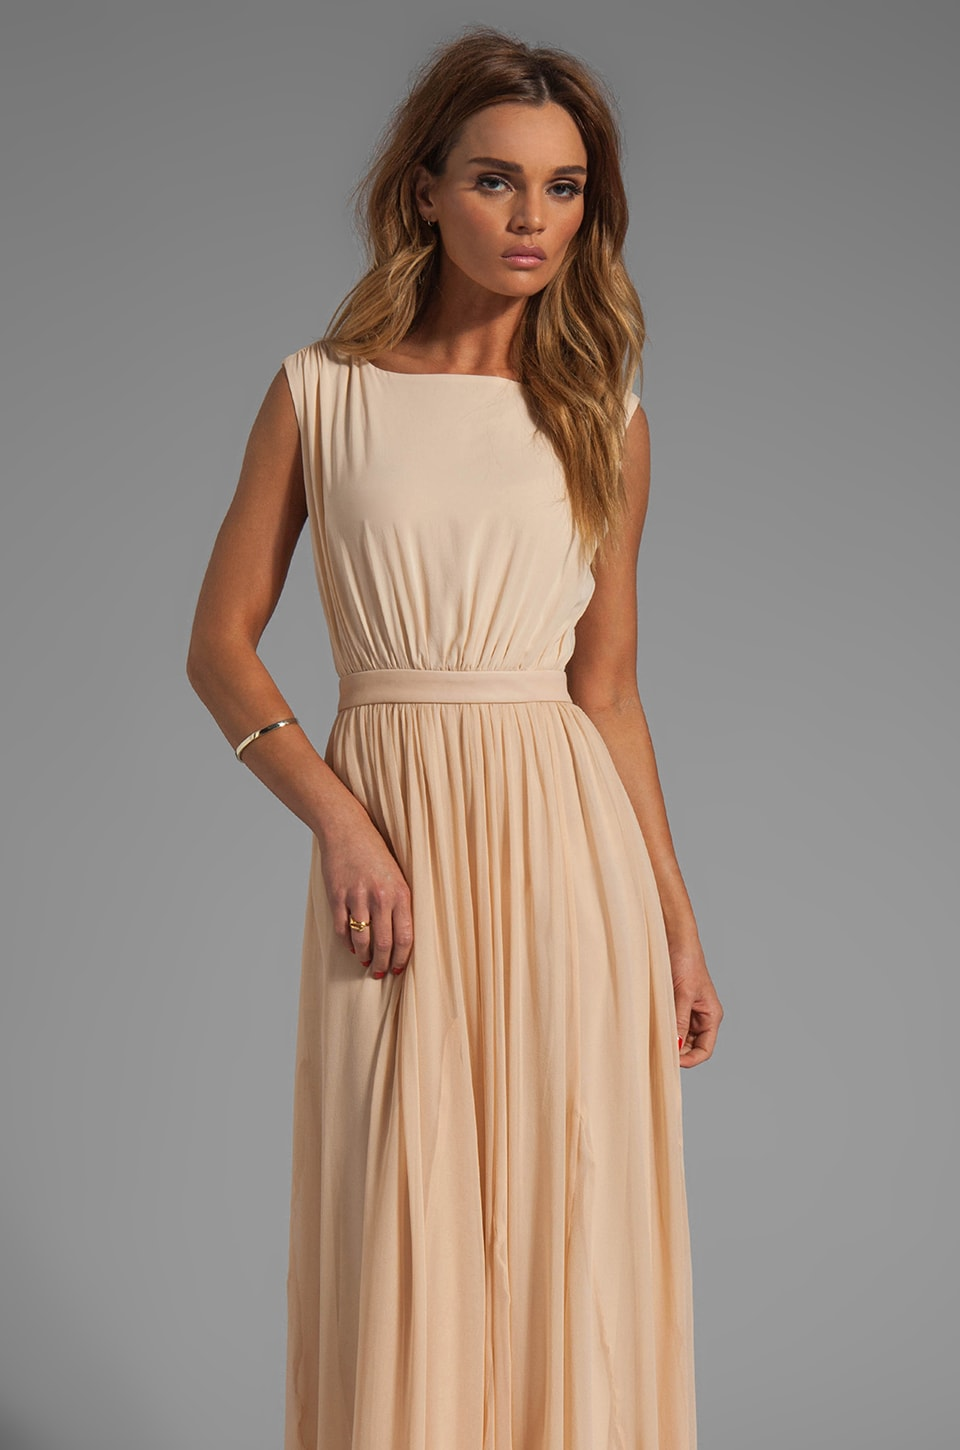 Alice + Olivia Triss Sleeveless Maxi Dress with Leather Trim en Créme D'Amande